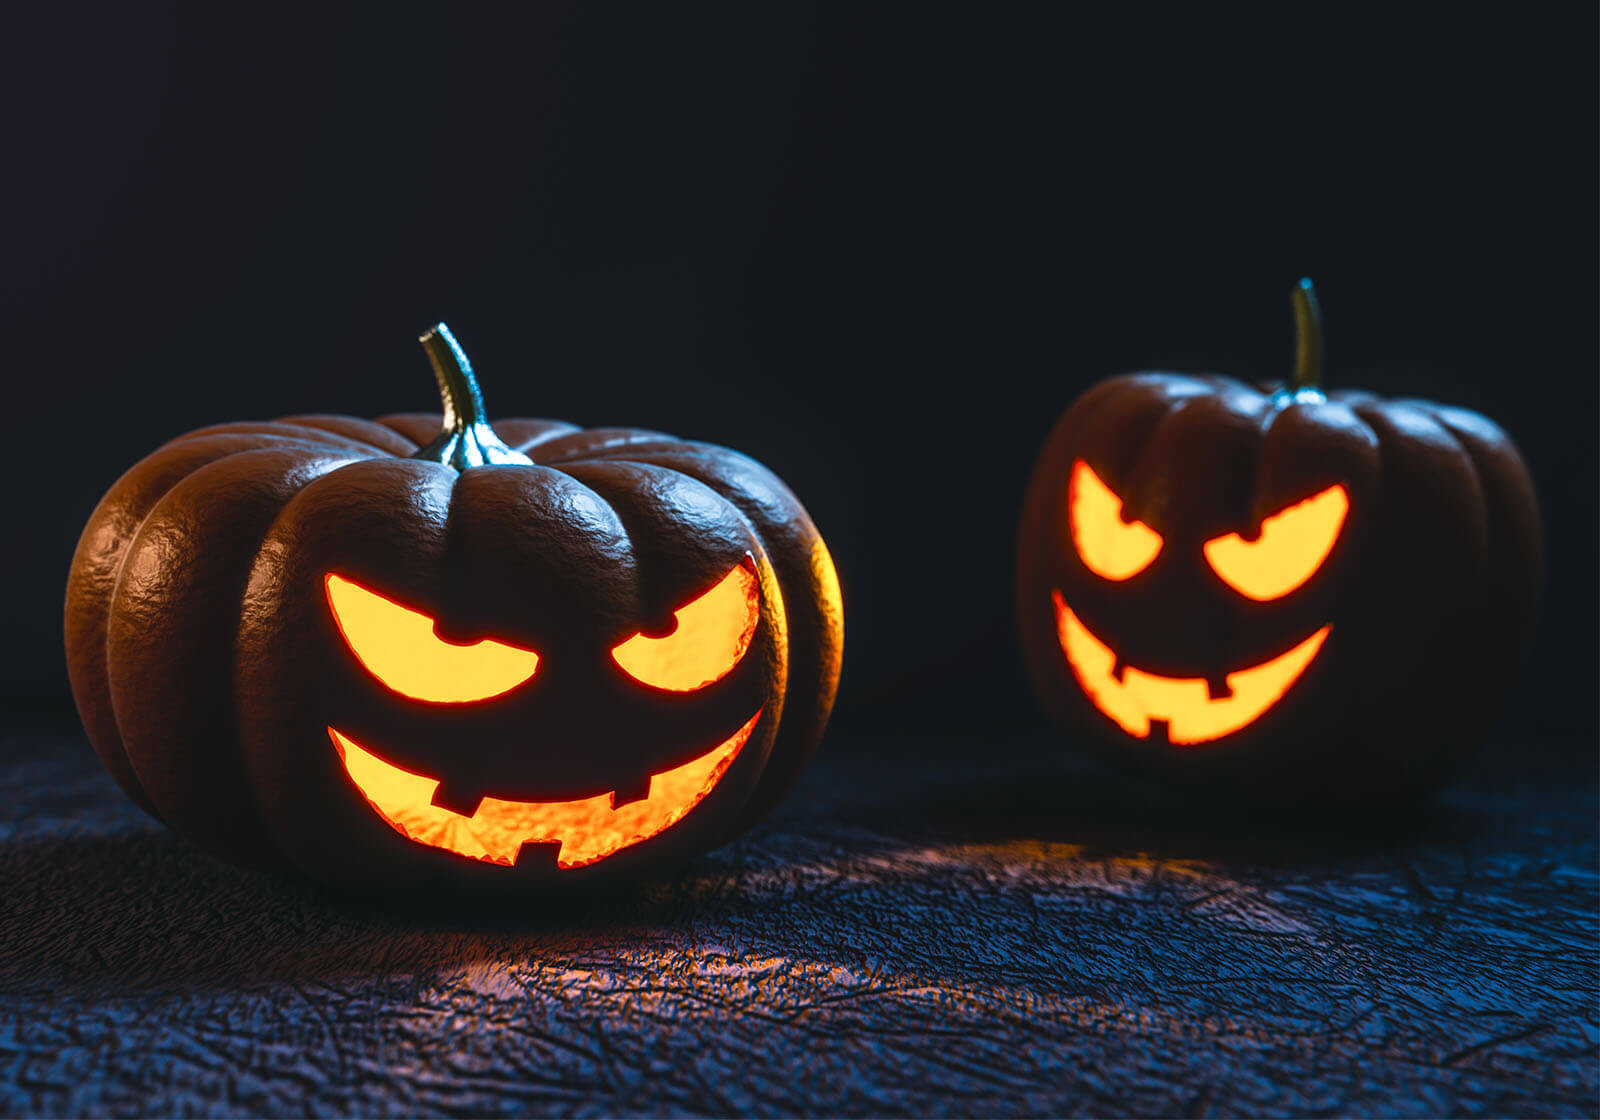 The election, is it a 'trick or treat' for investors?